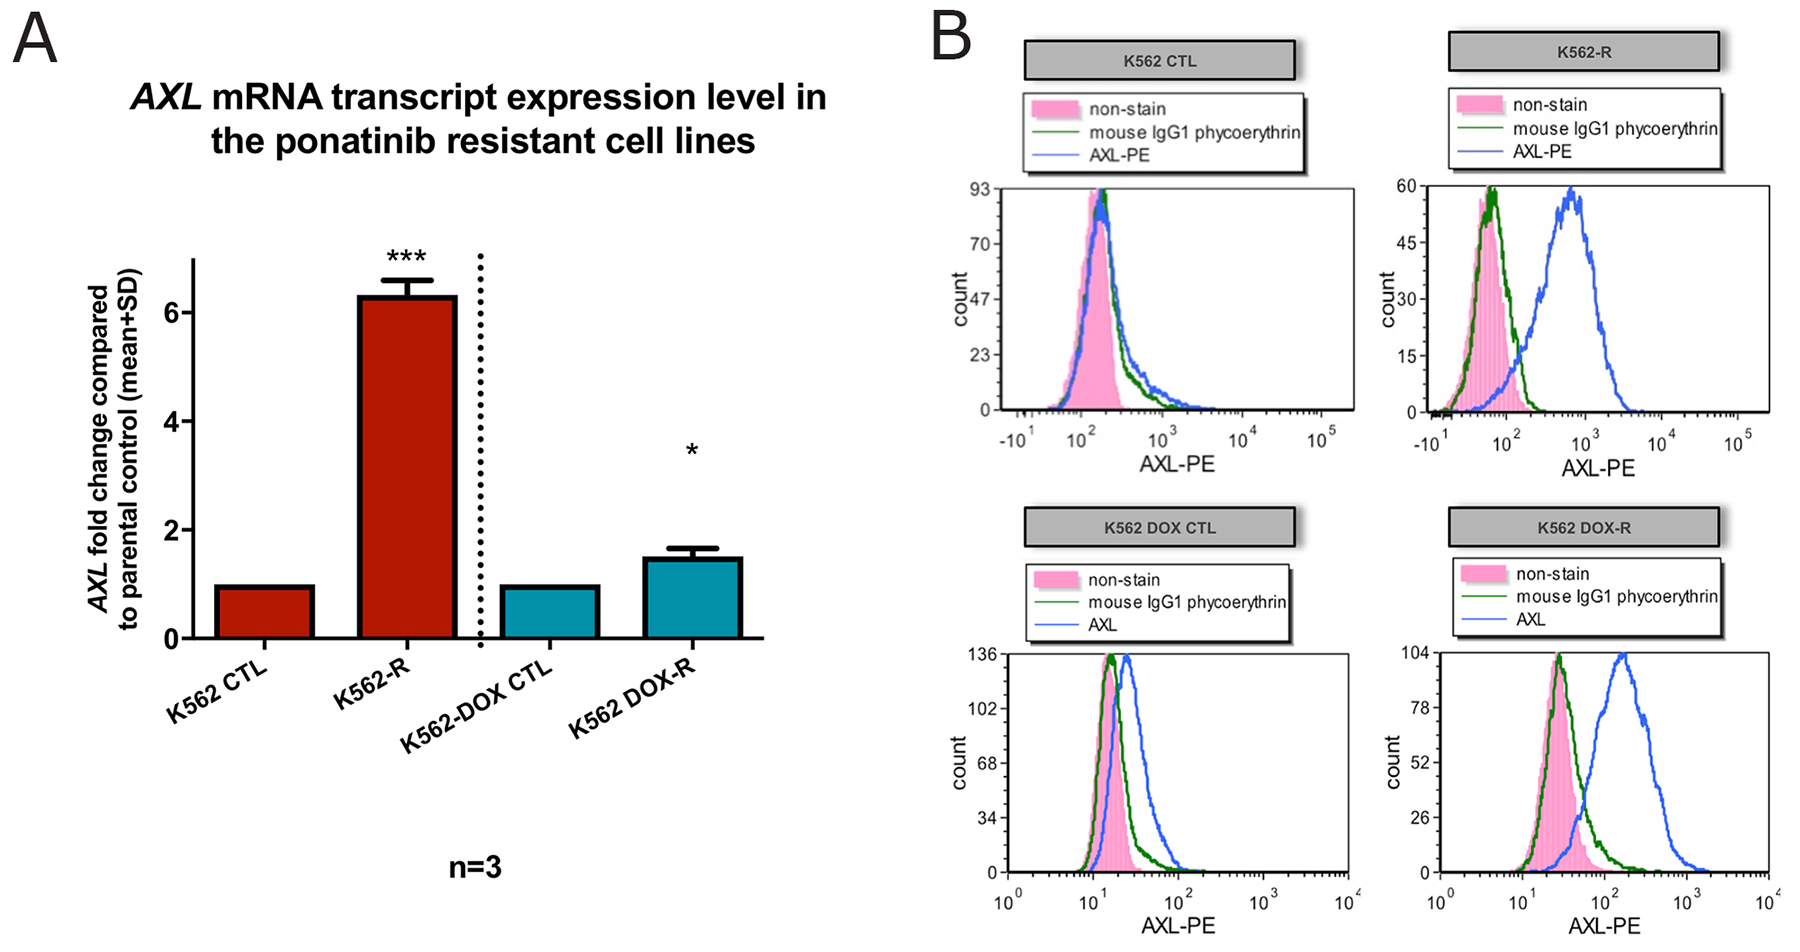 K562-R and K562 DOX-R cell lines demonstrated increased expression of the pro-adhesion protein Axl.